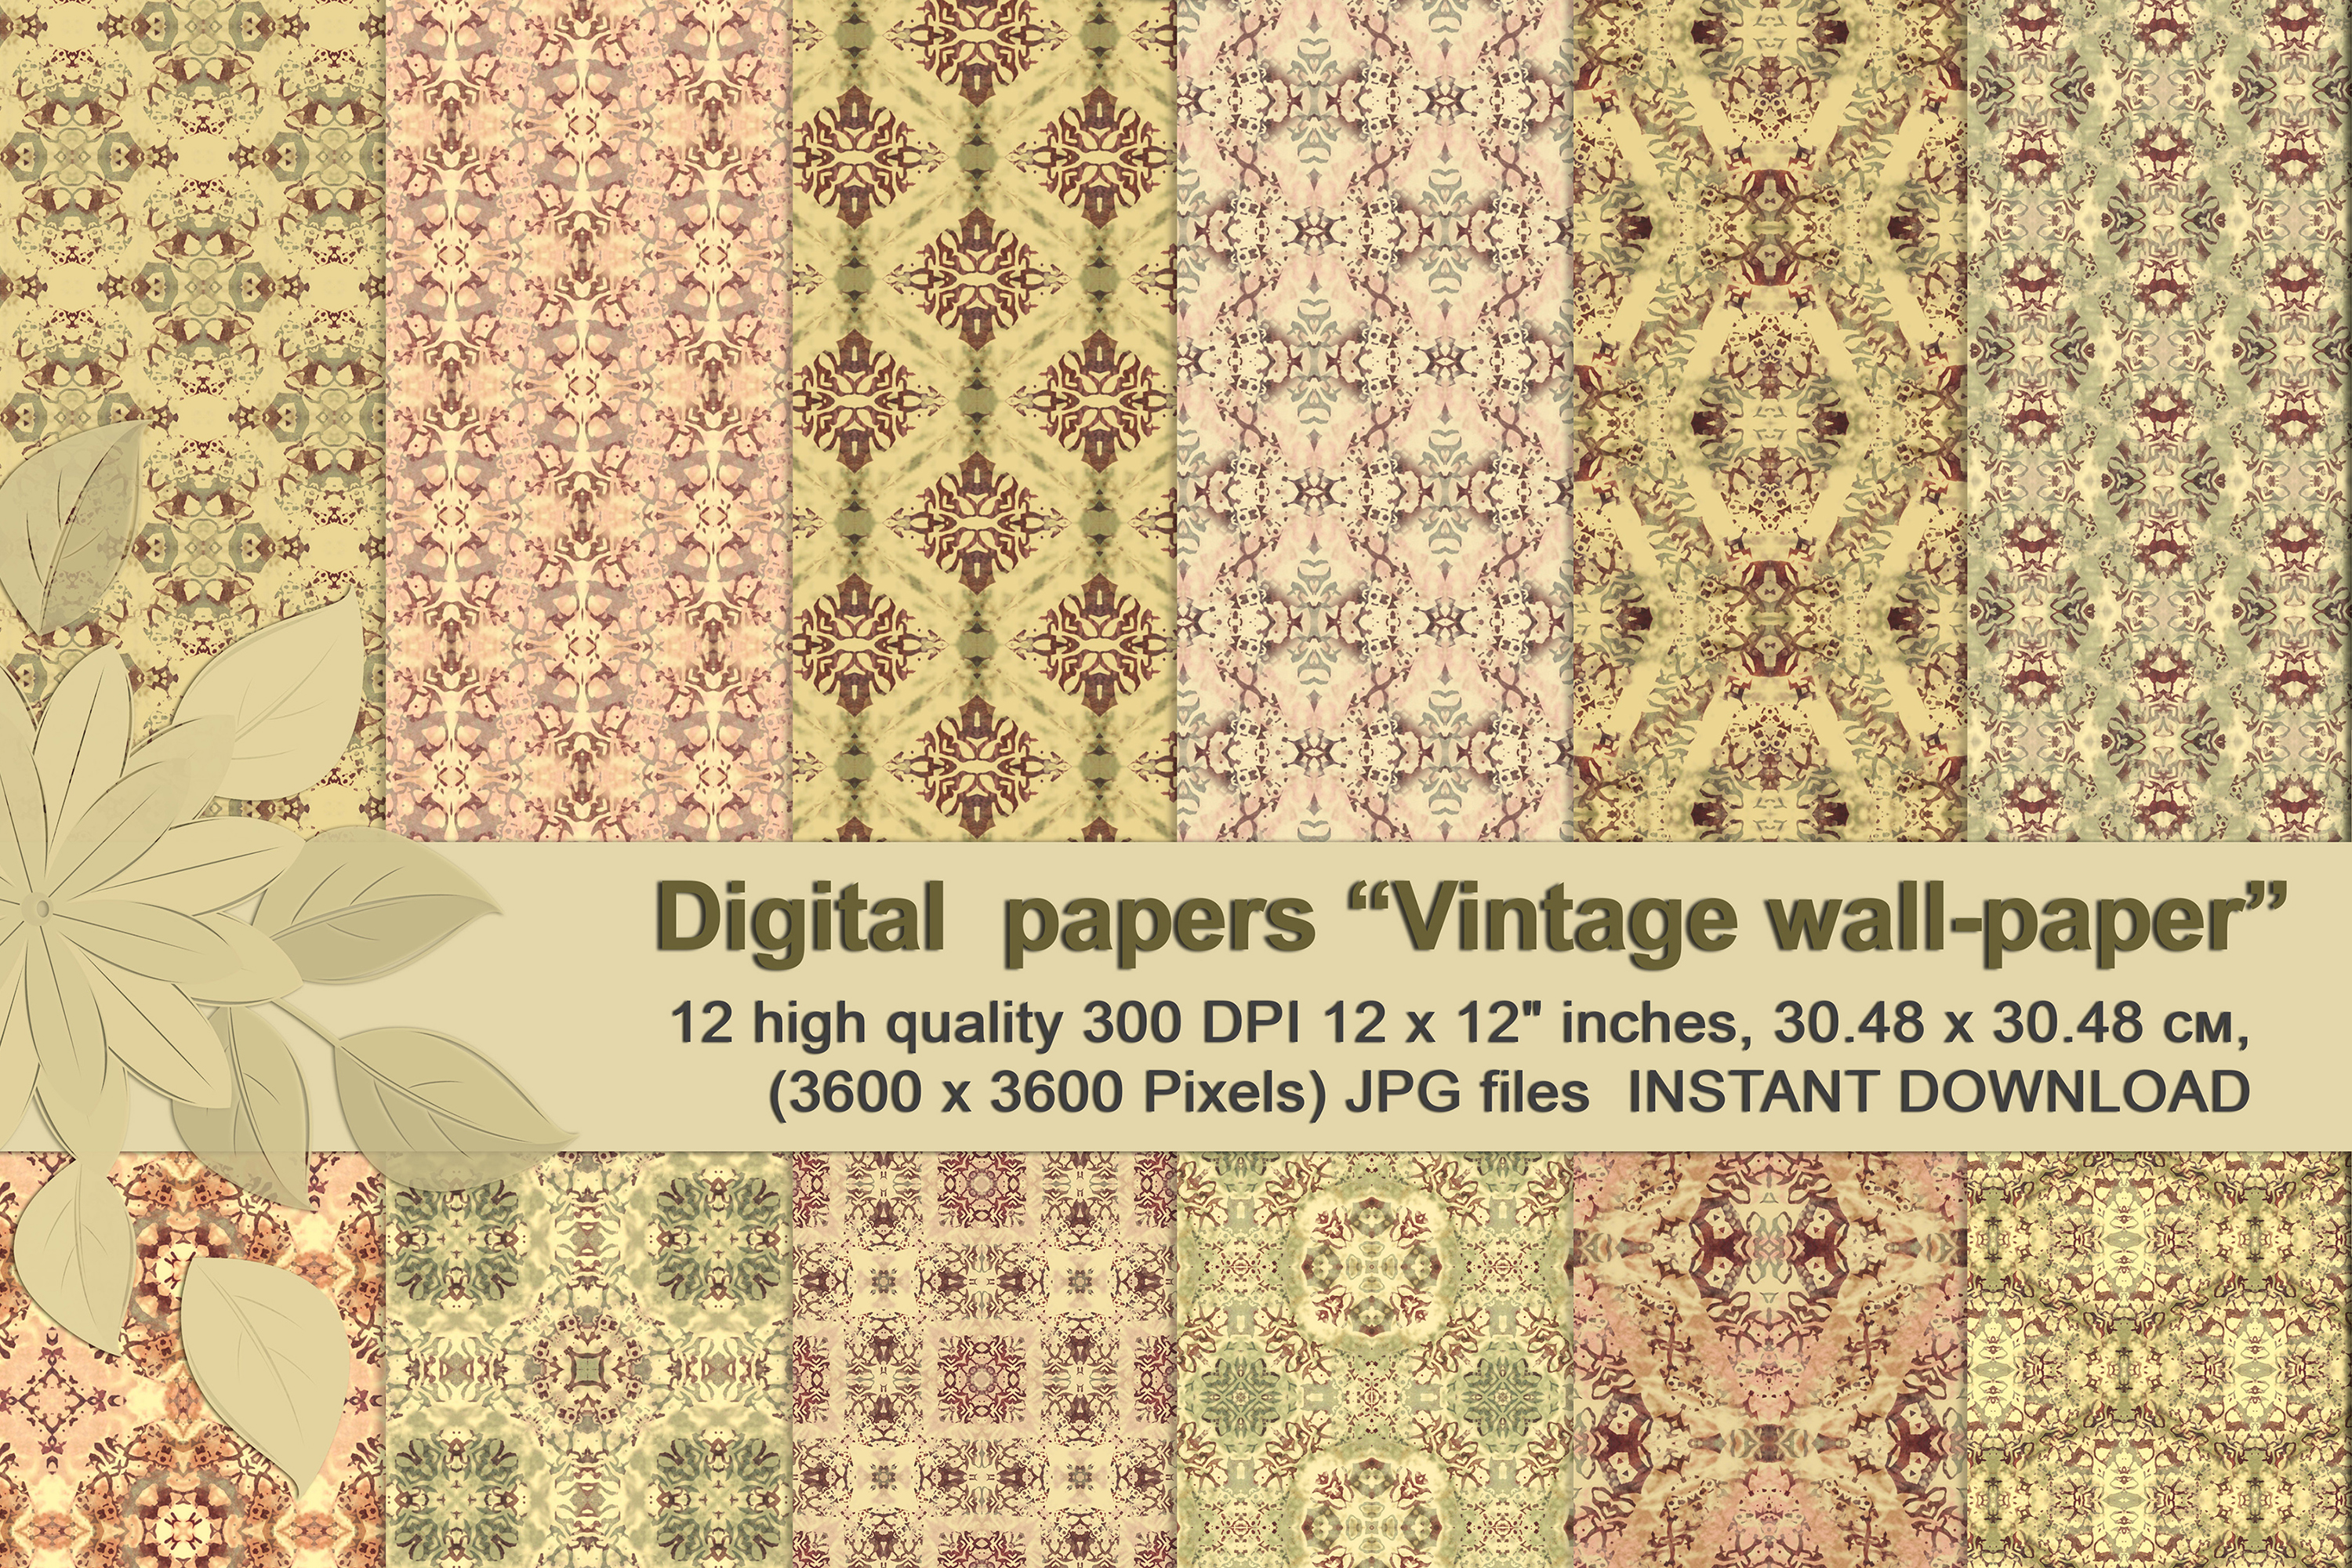 Vintage Abstract Patterns, Digital Scrapbook Paper example image 1